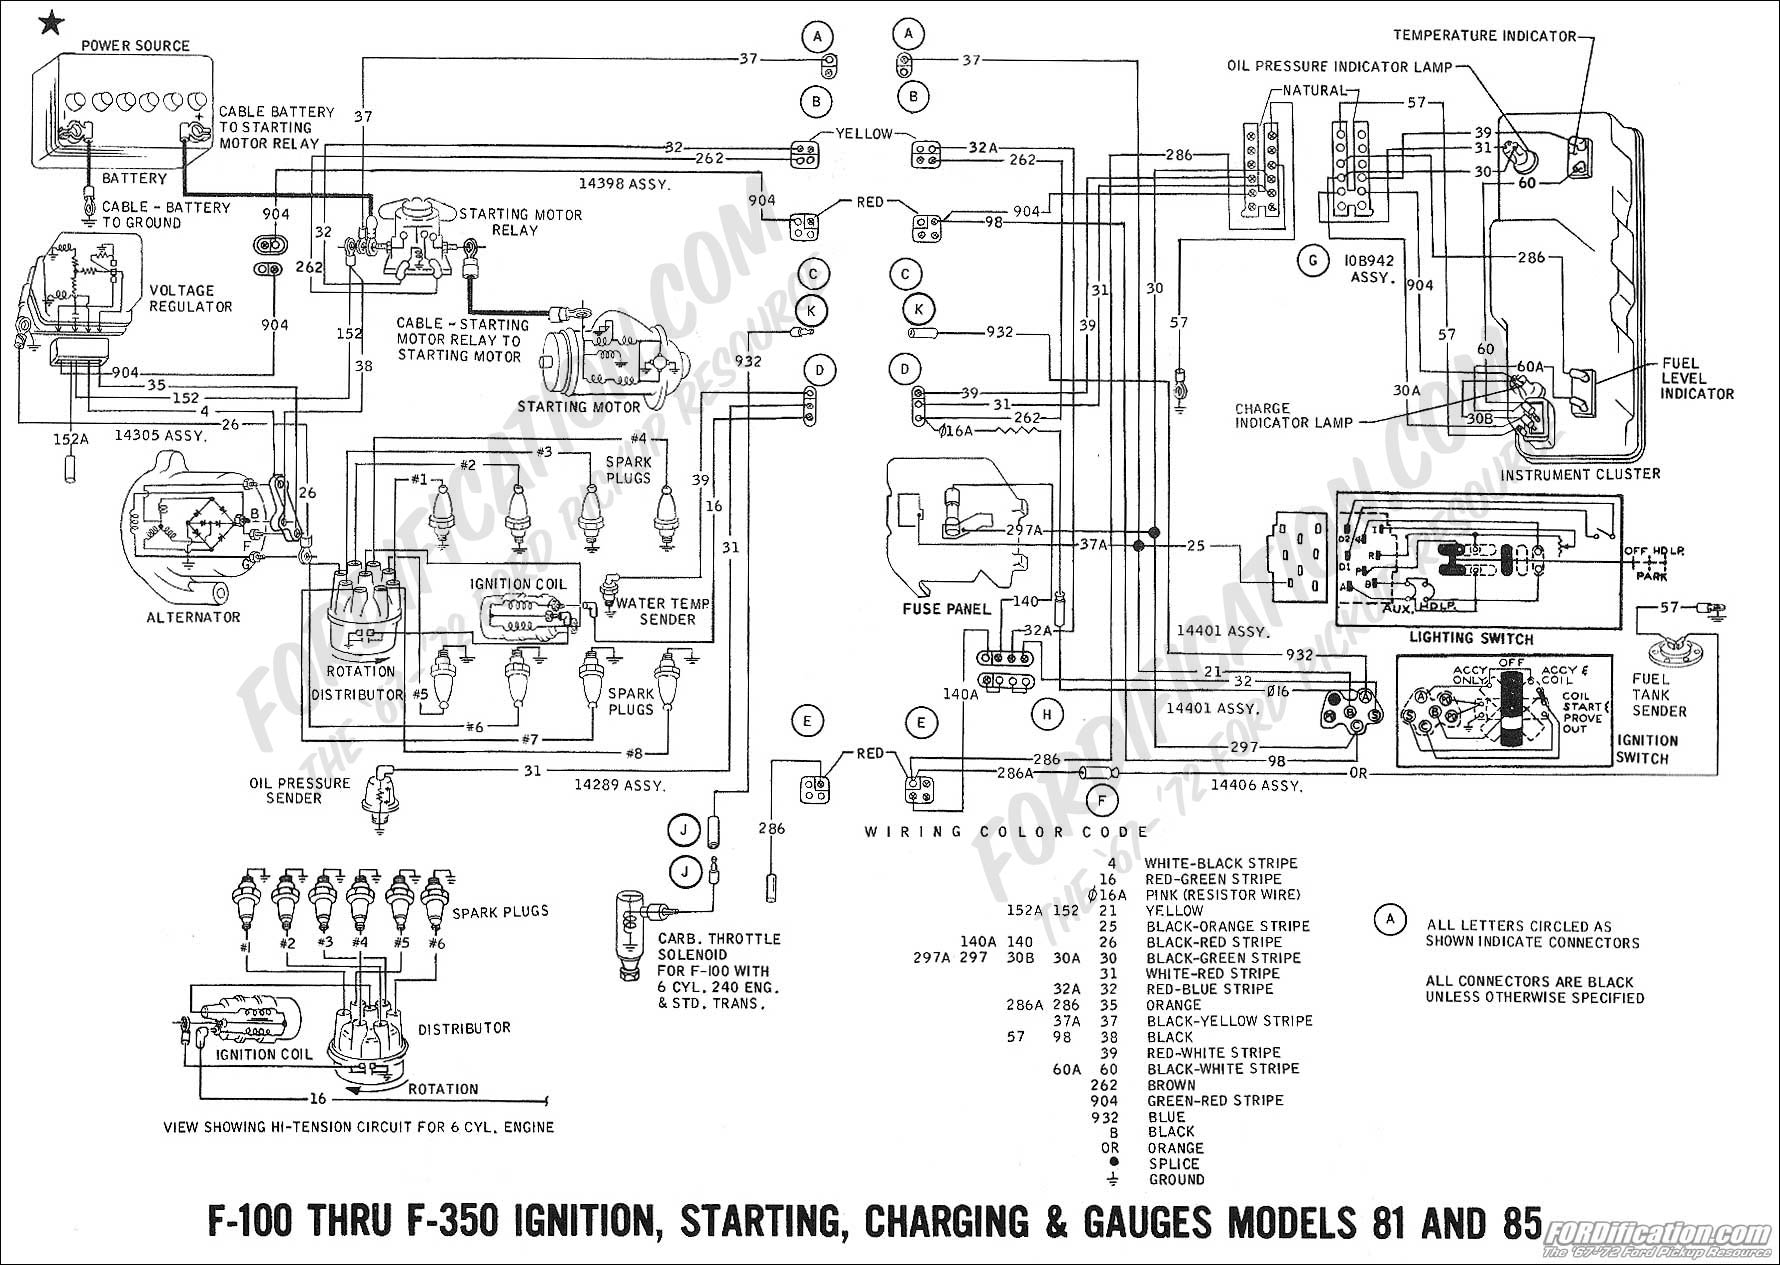 hight resolution of 1970 ford f100 dash wiring diagram wiring diagram portal 1966 f100 rear view mirror 1966 f100 dash wiring